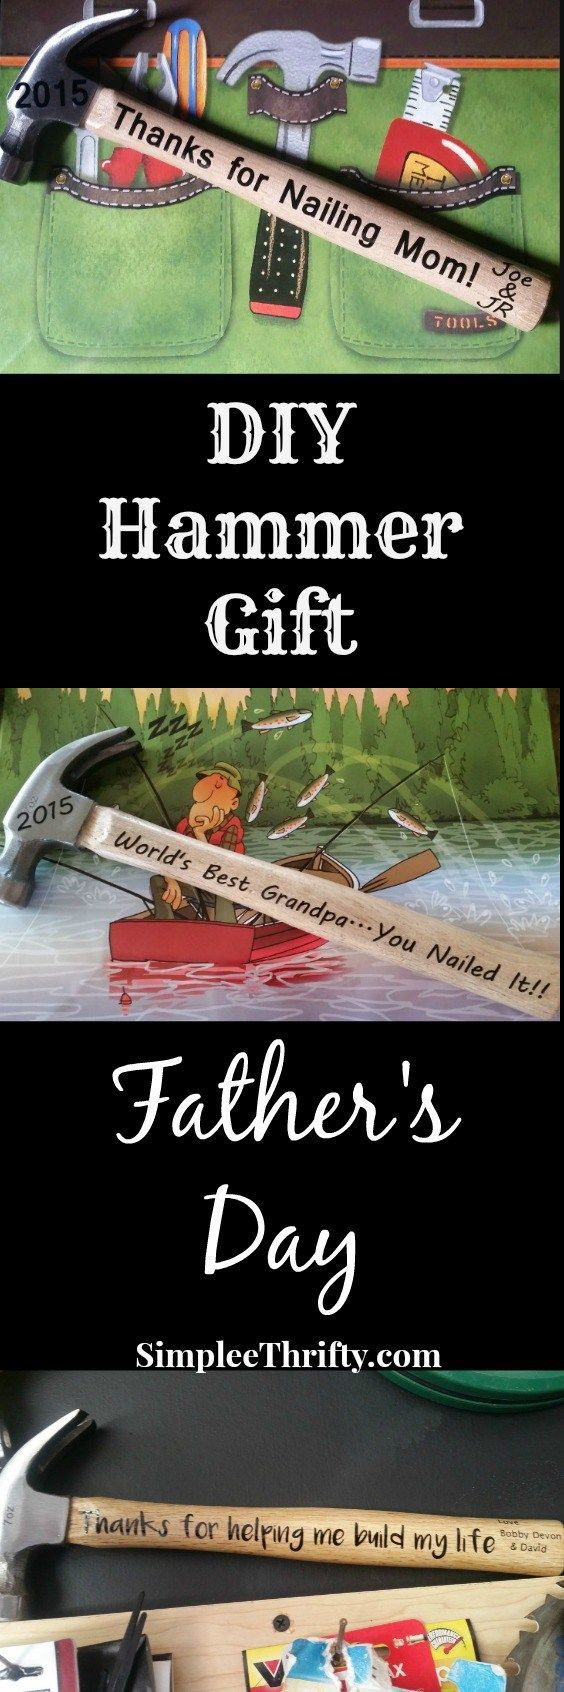 DIY Hammer Gift Father's Day Idea.  There is nothing more special than a handmade gift for your loved one. We have made You Nailed It DIY Hammer Gift for Father's Day DIY Gift to give to Dad and Grandpa.